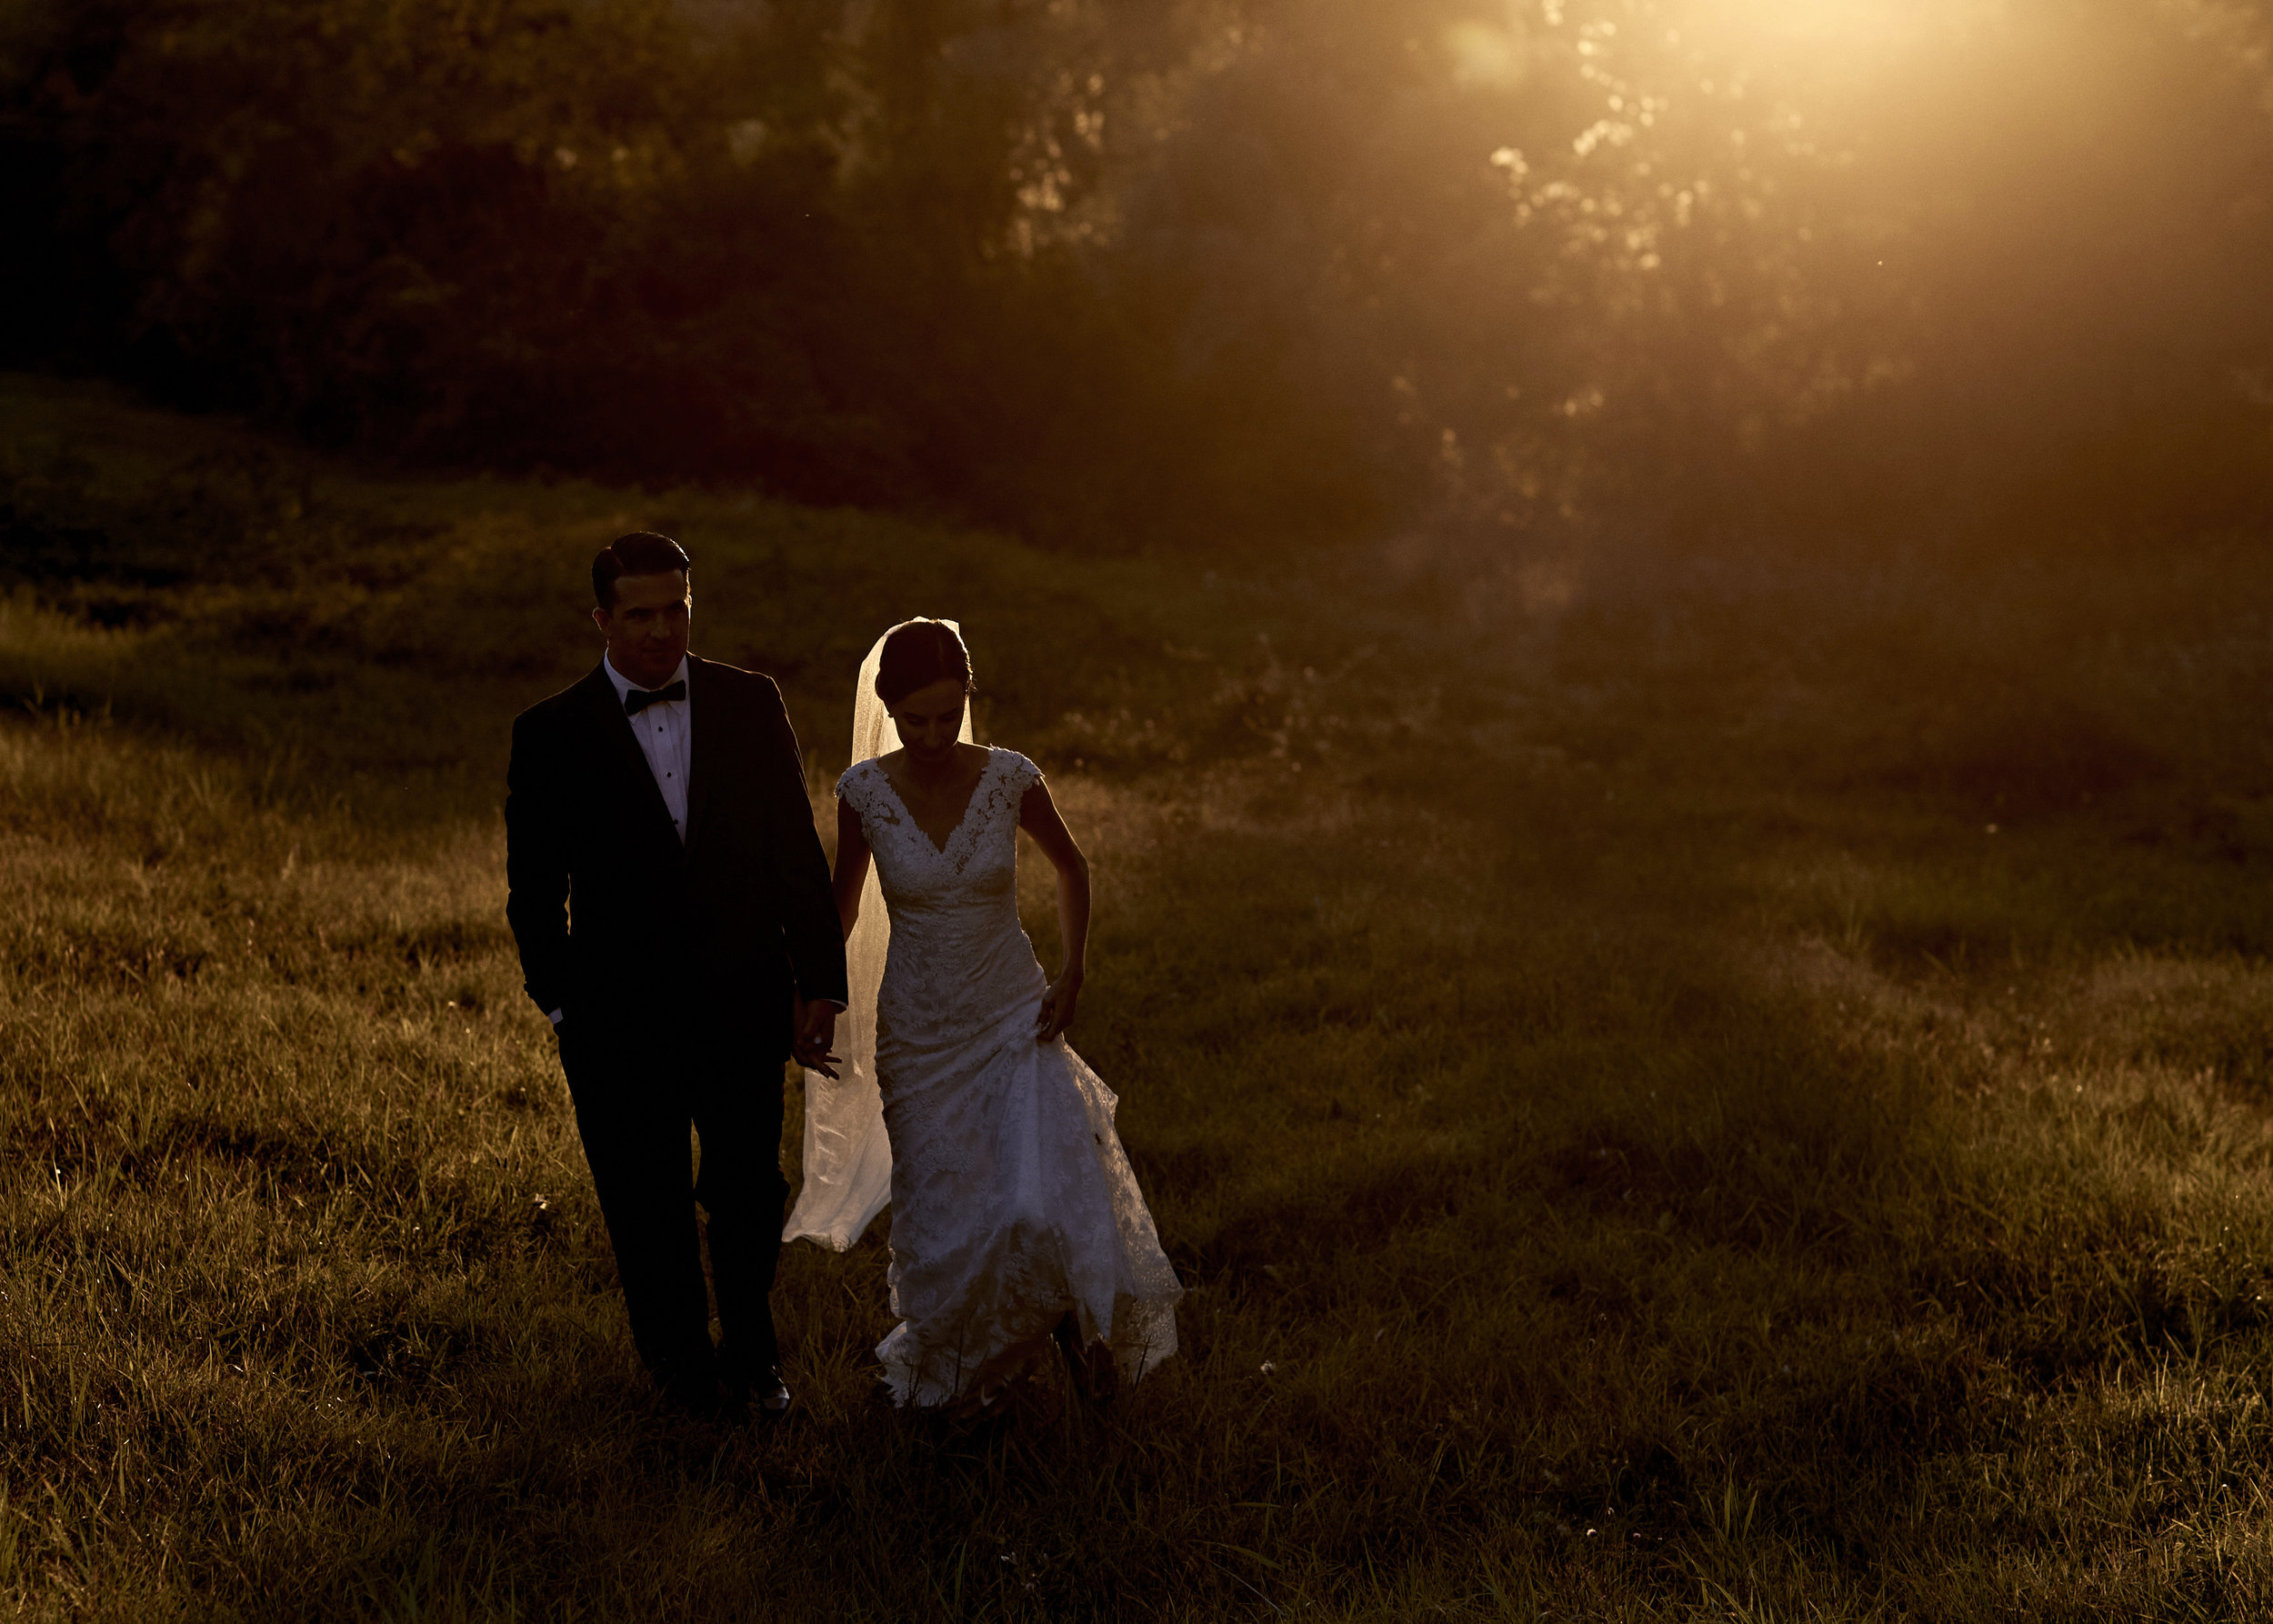 Marcus & Emily - Elopement in Florence, Italy (photographed alongside  Matt Lien ).